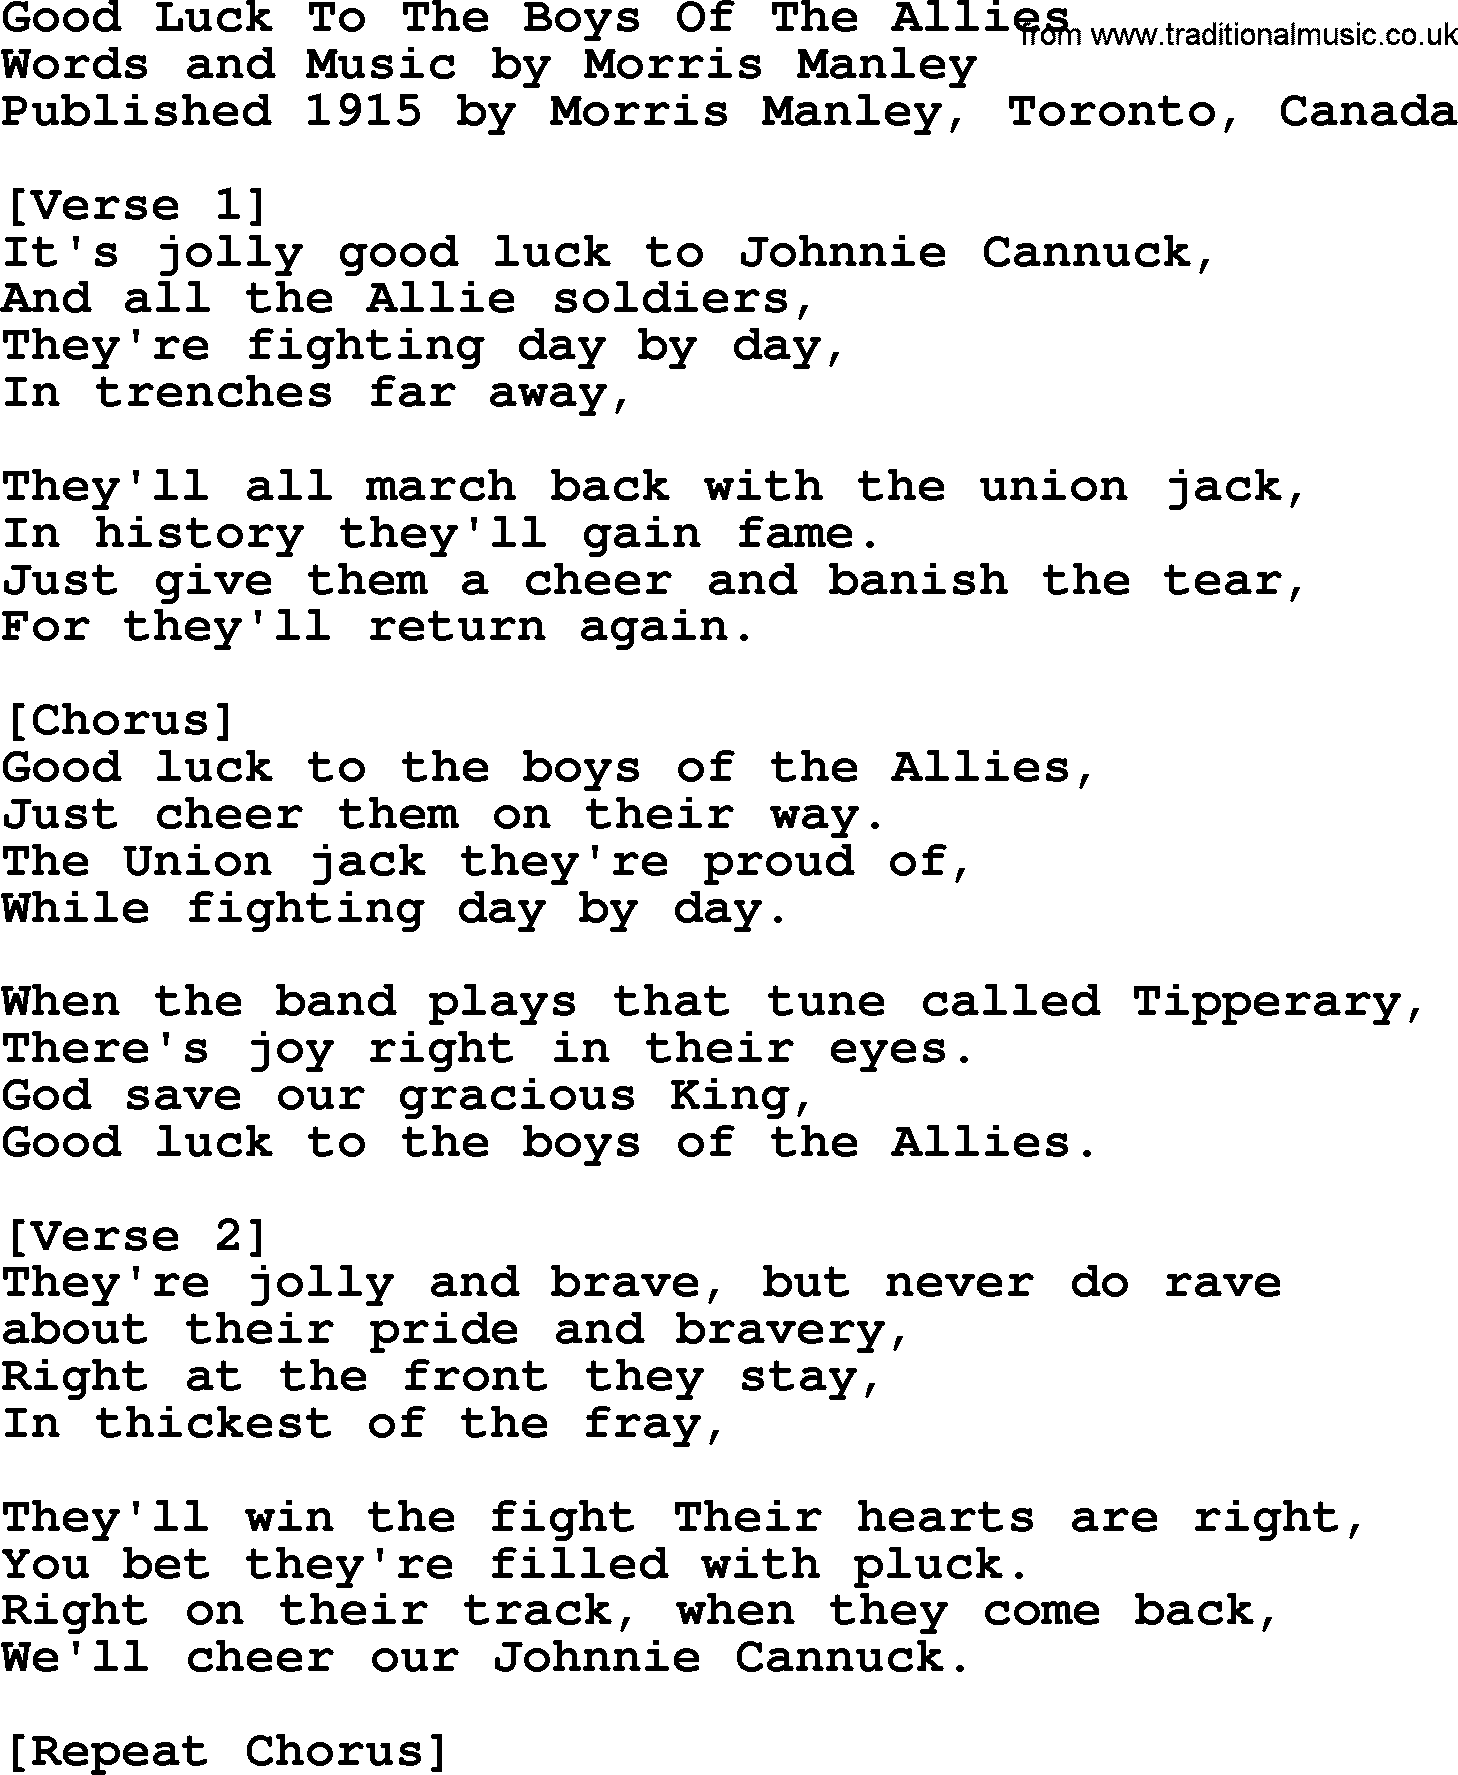 War ww1 one song good luck to the boys of the allies lyrics and pdf